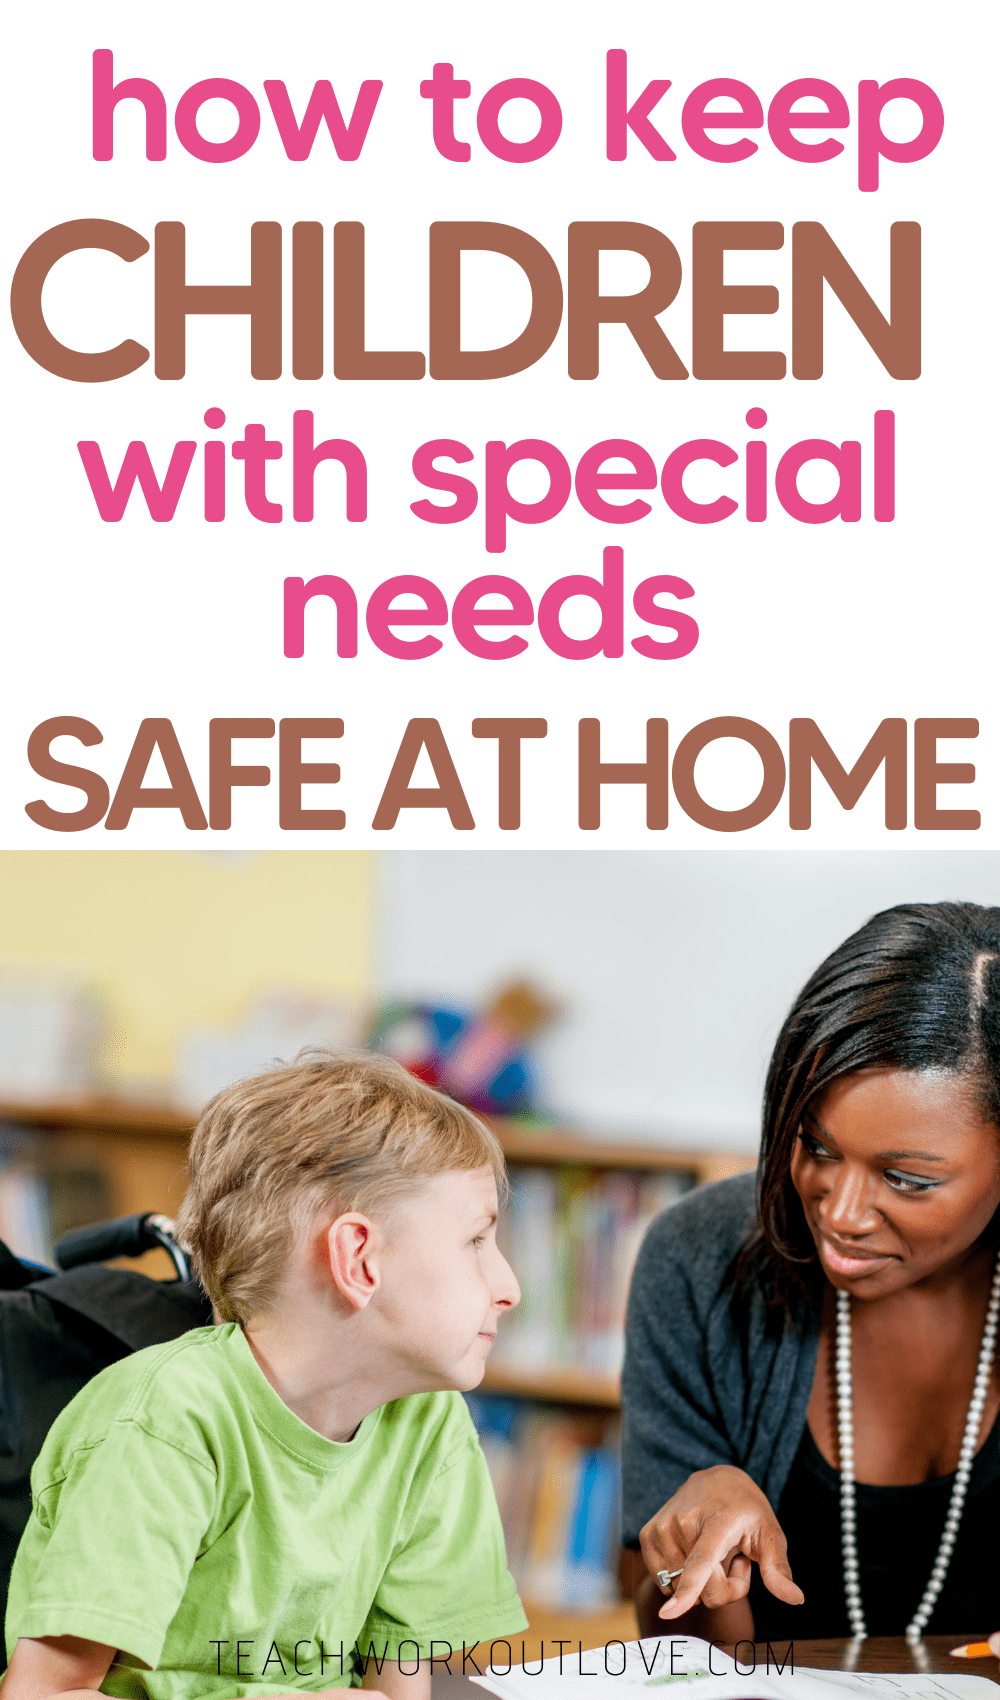 With children, we need to make our home's safe. Here are five general recommendations that you can do to keep your kids with special needs safe at home.